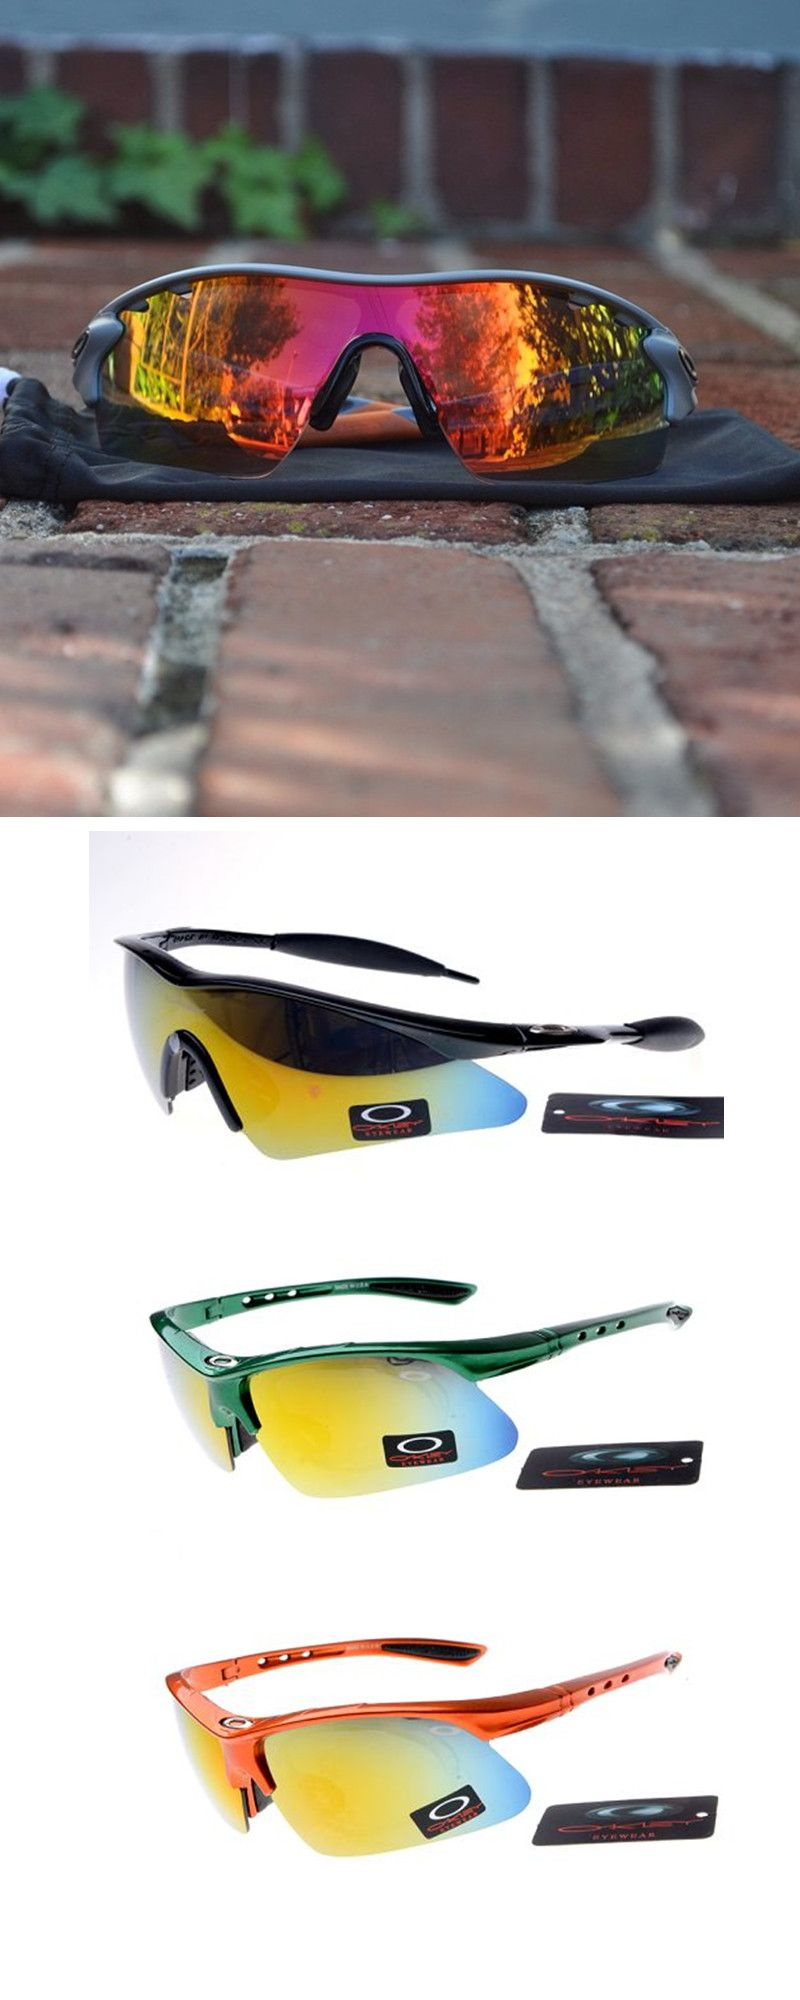 279a0df601d4 oakley pro m frame slash strap kit Oakley Sunglasses